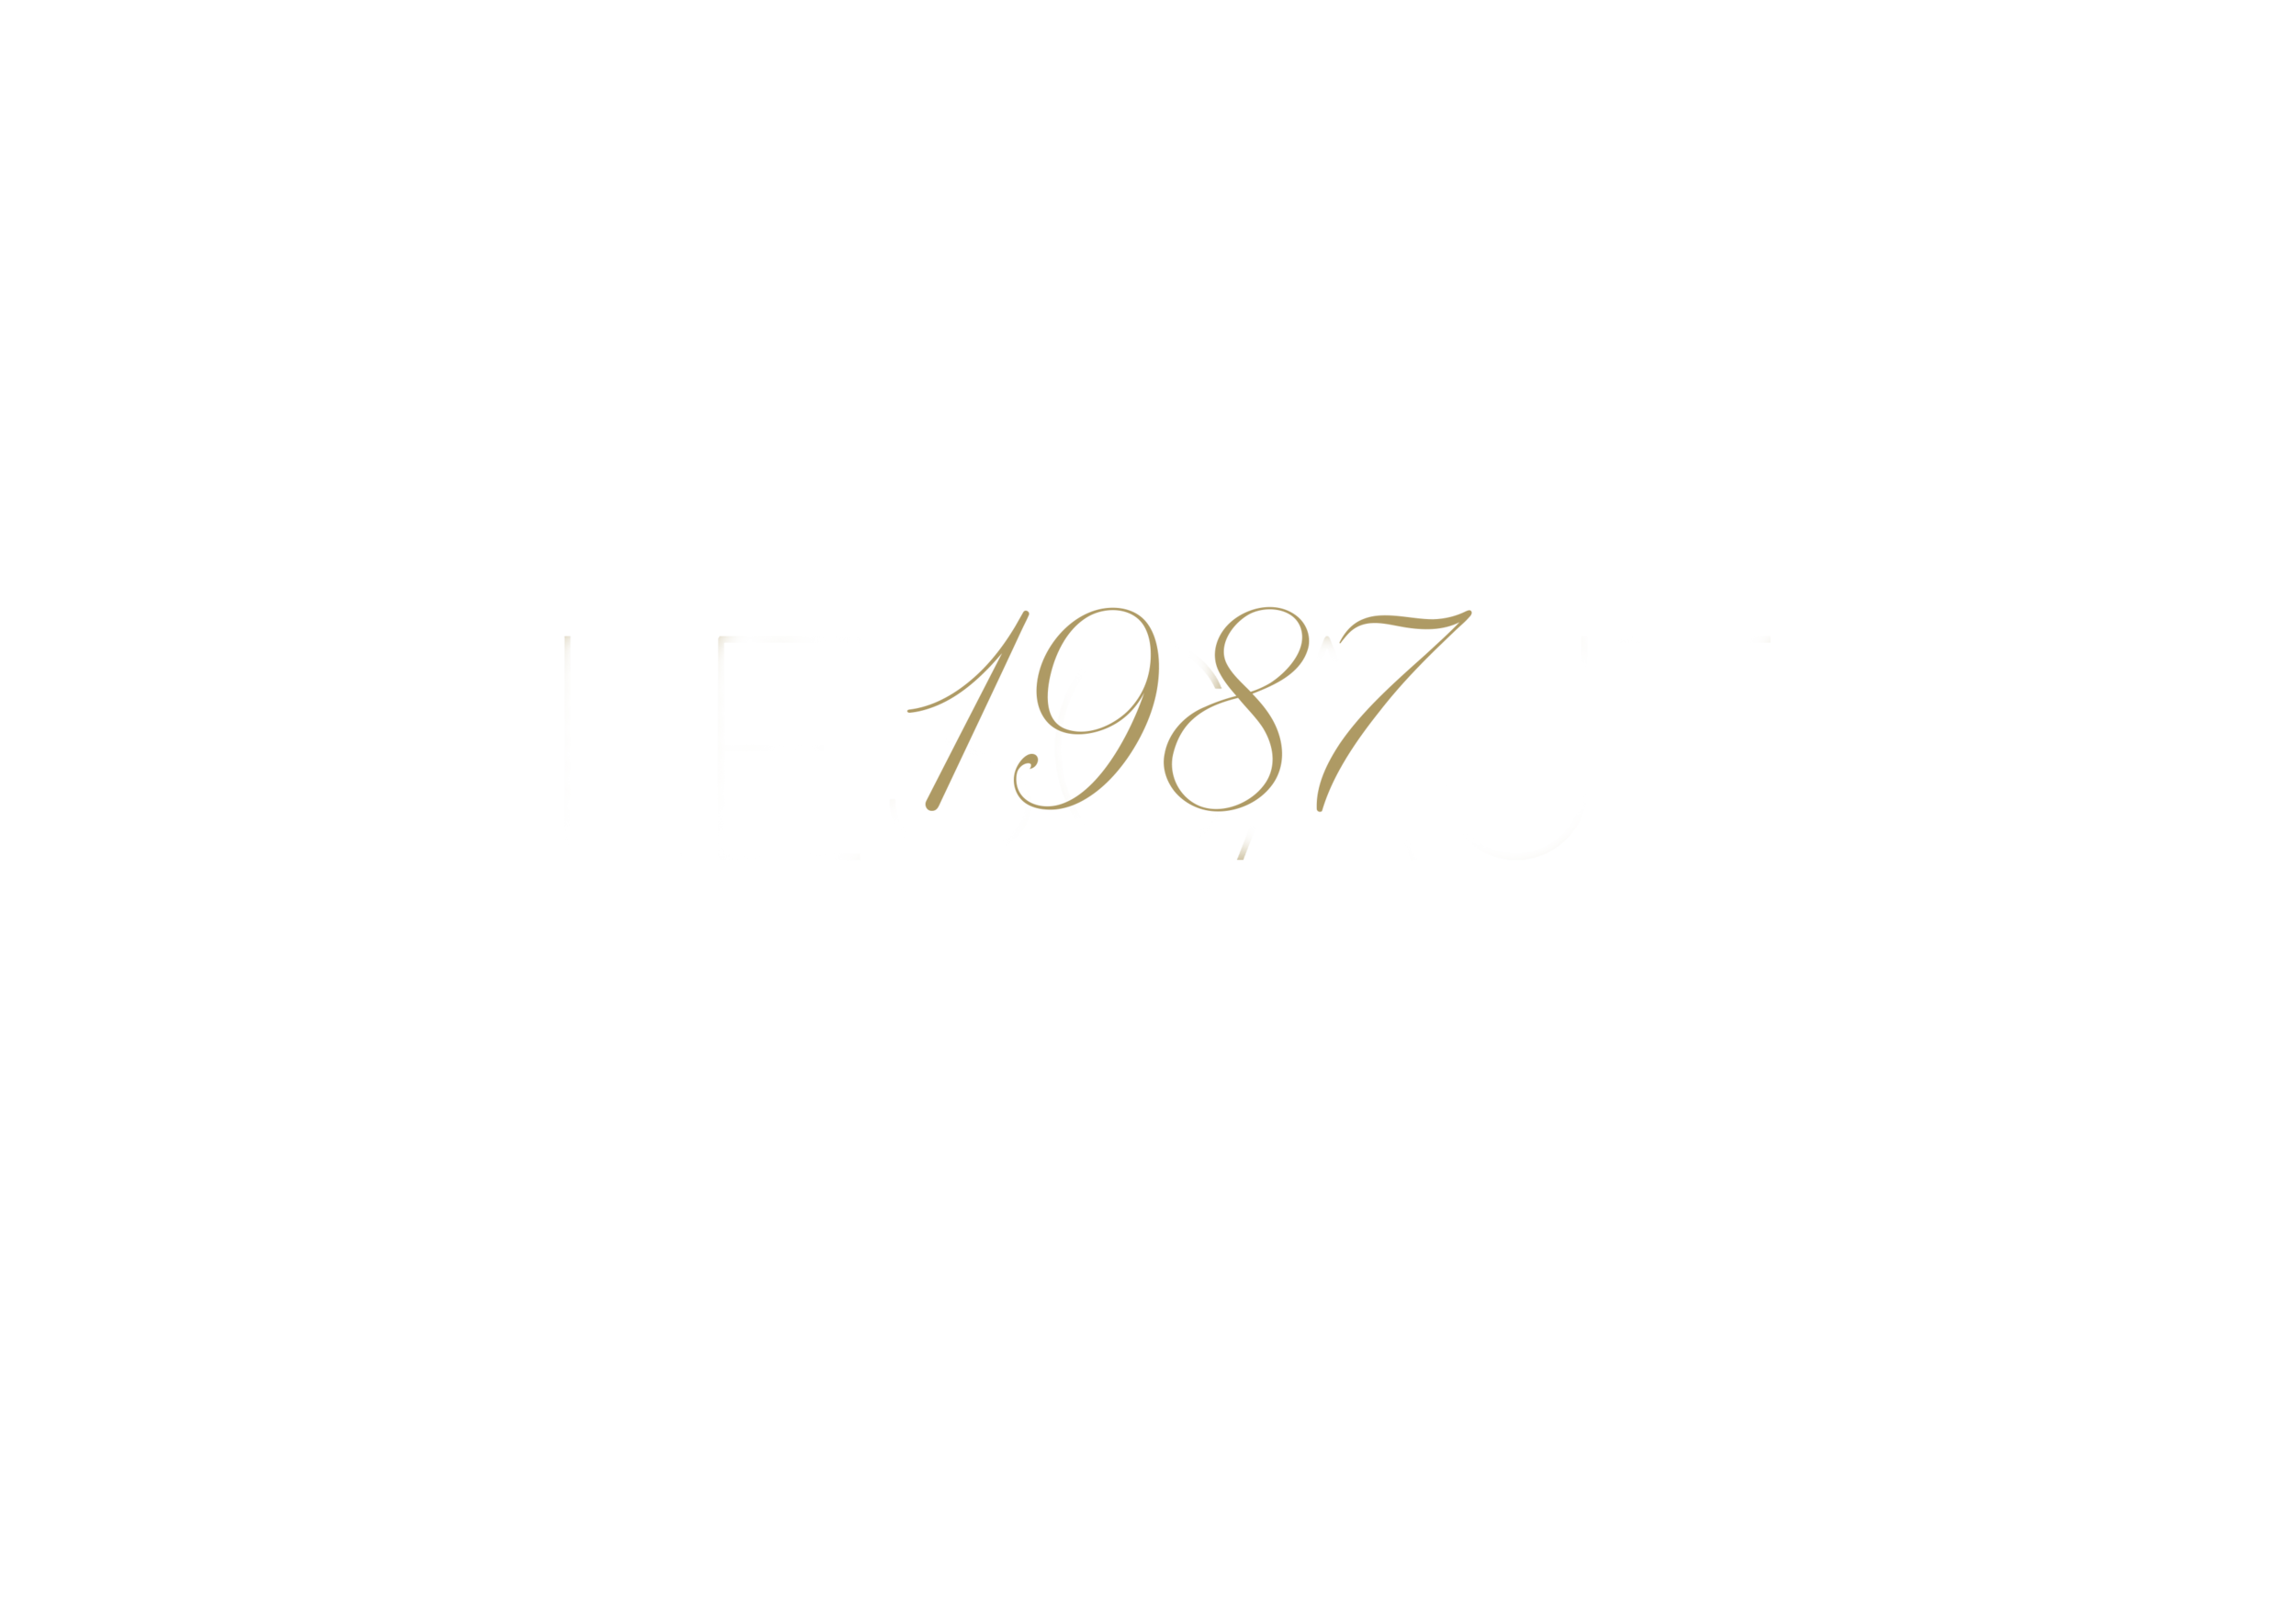 1987_gold.png